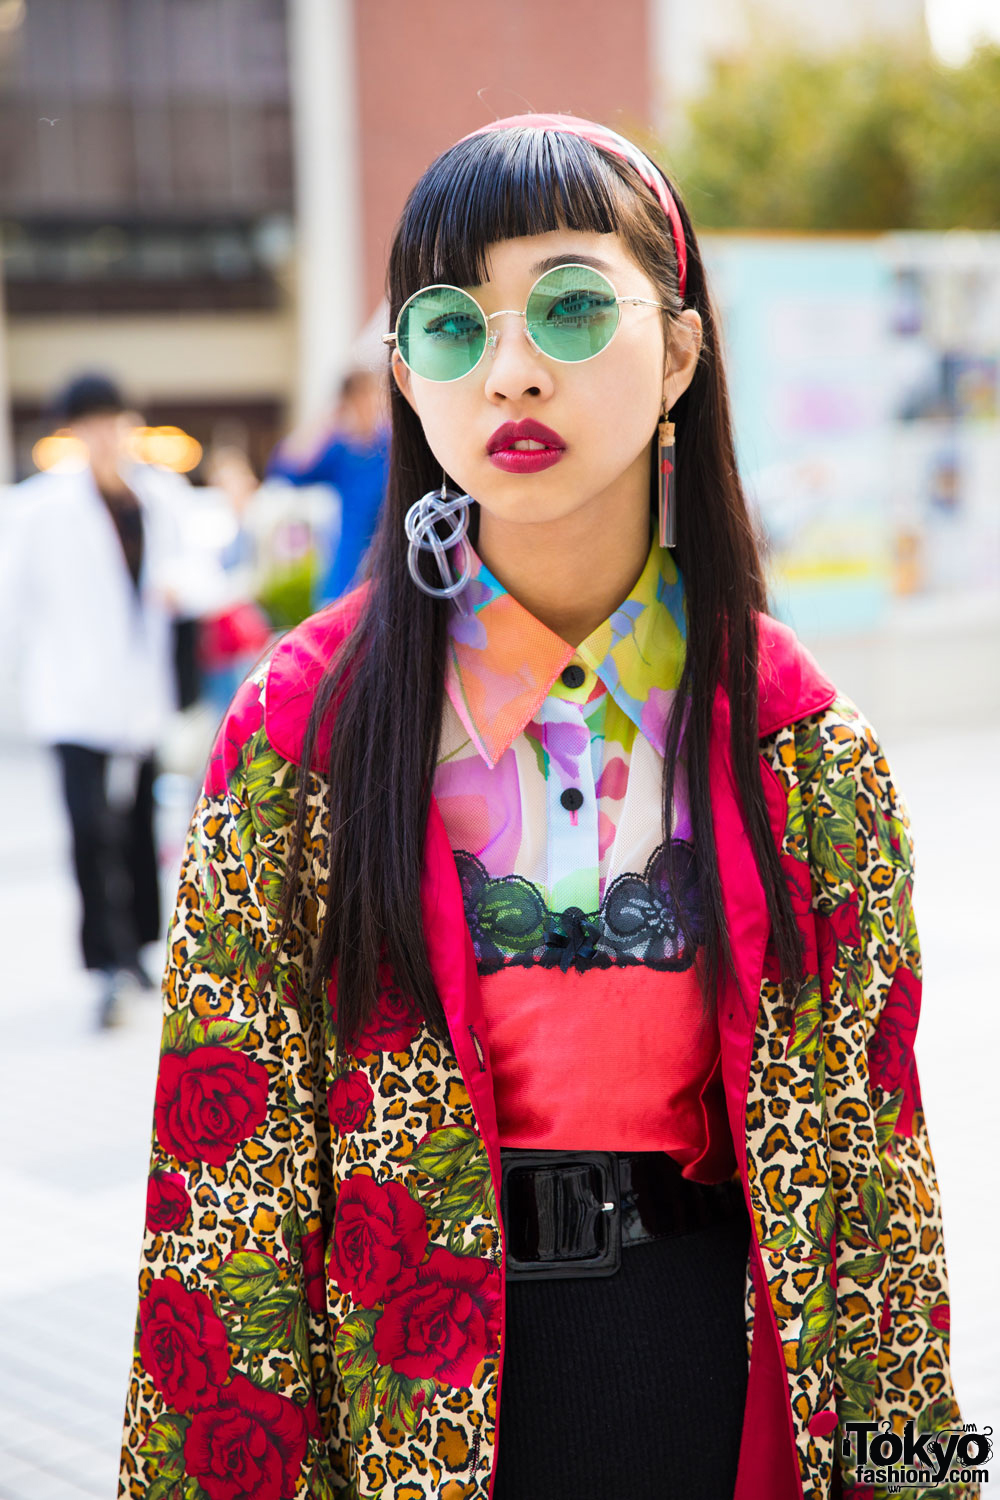 Japanese Fashion Student in Vintage Mixed Prints Street